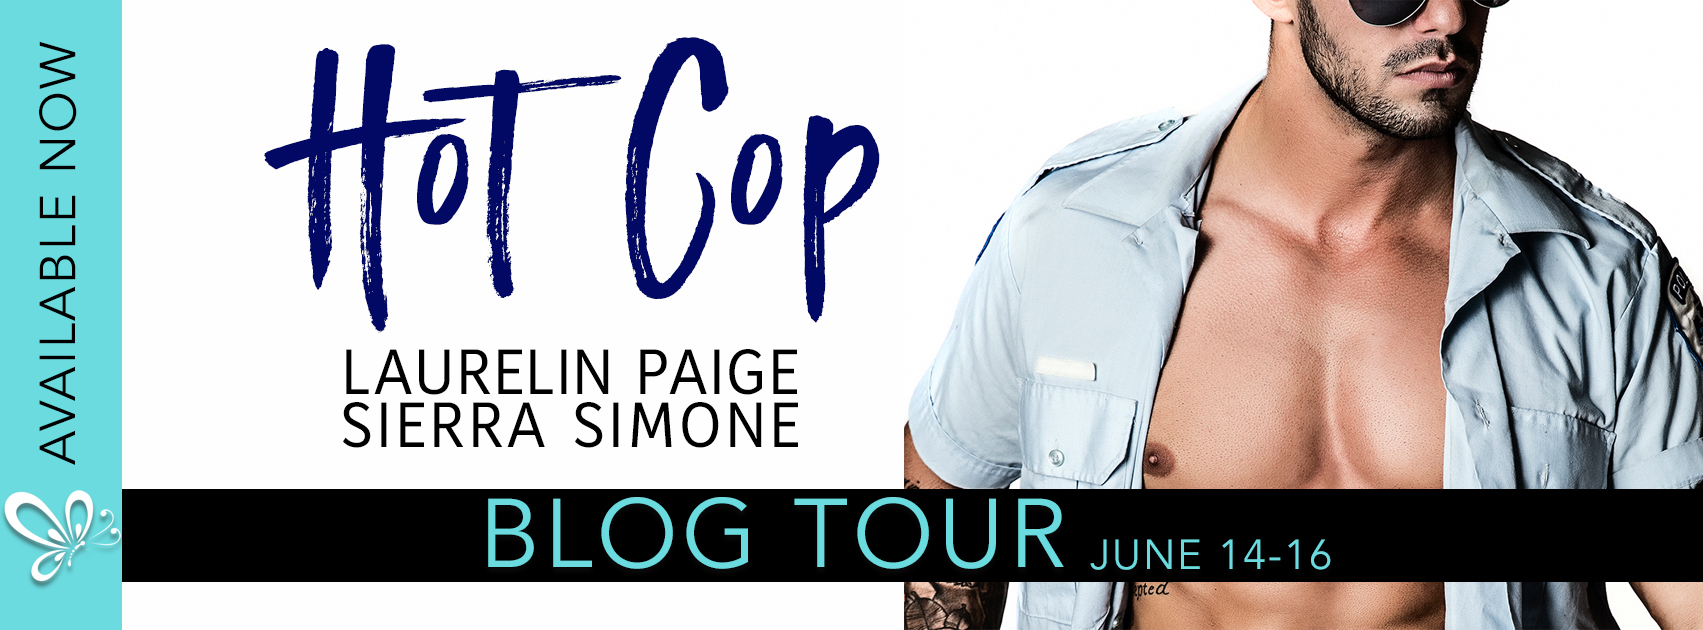 Blog Tour Review:  Hot Cop by Laurelin Paige and Sierra Simone